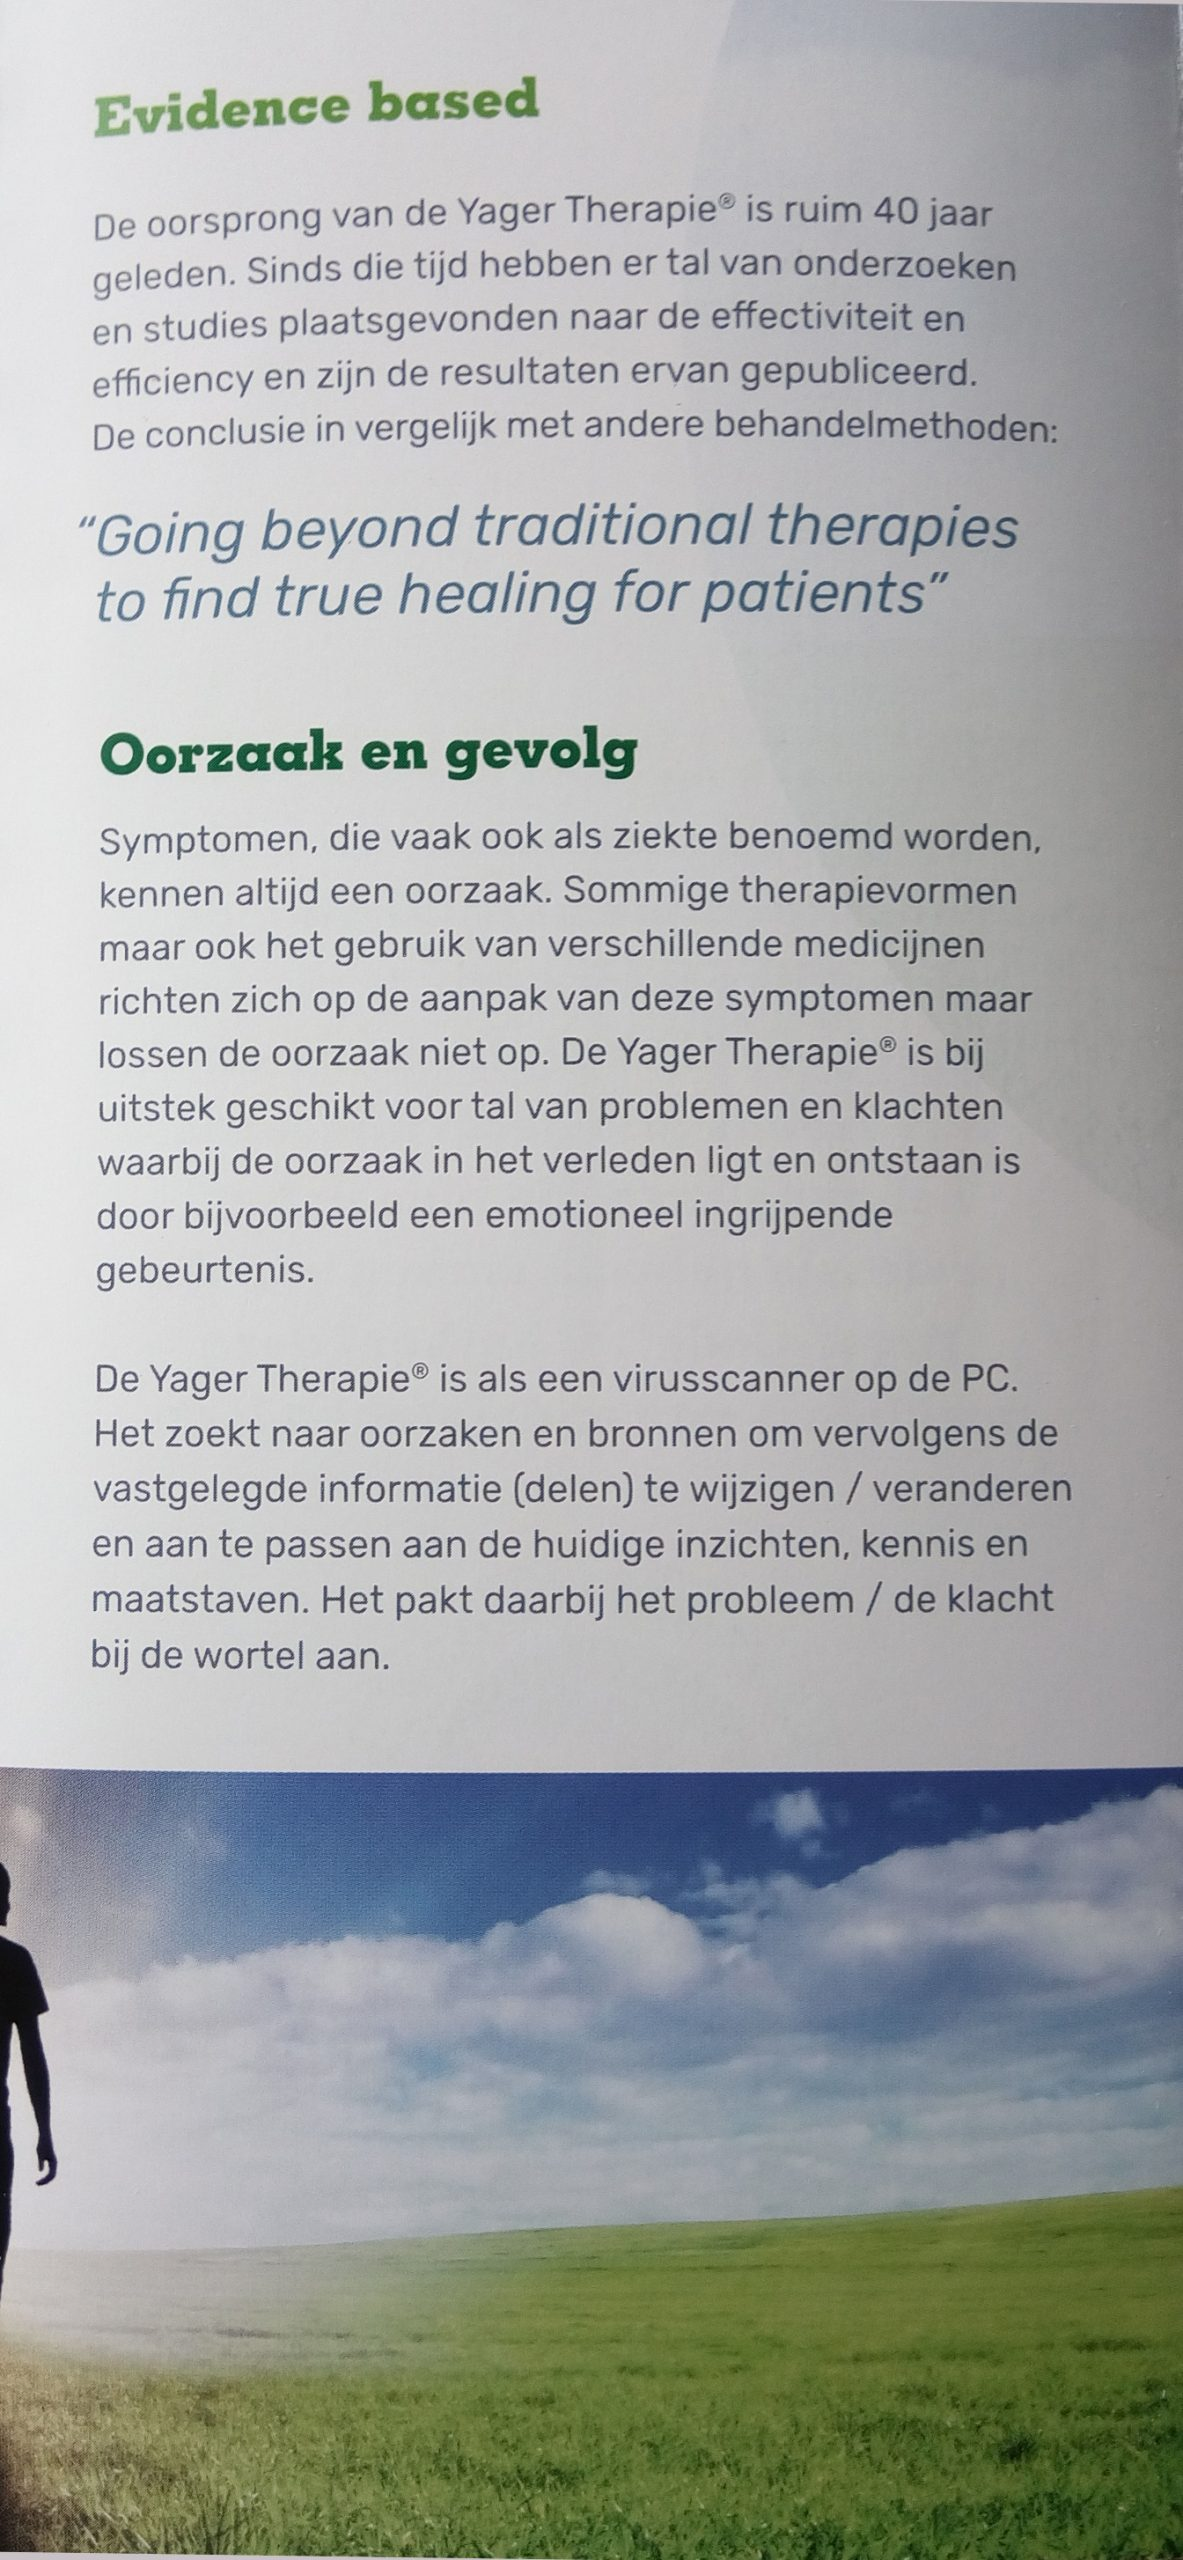 Yager Therapie Pagina 2